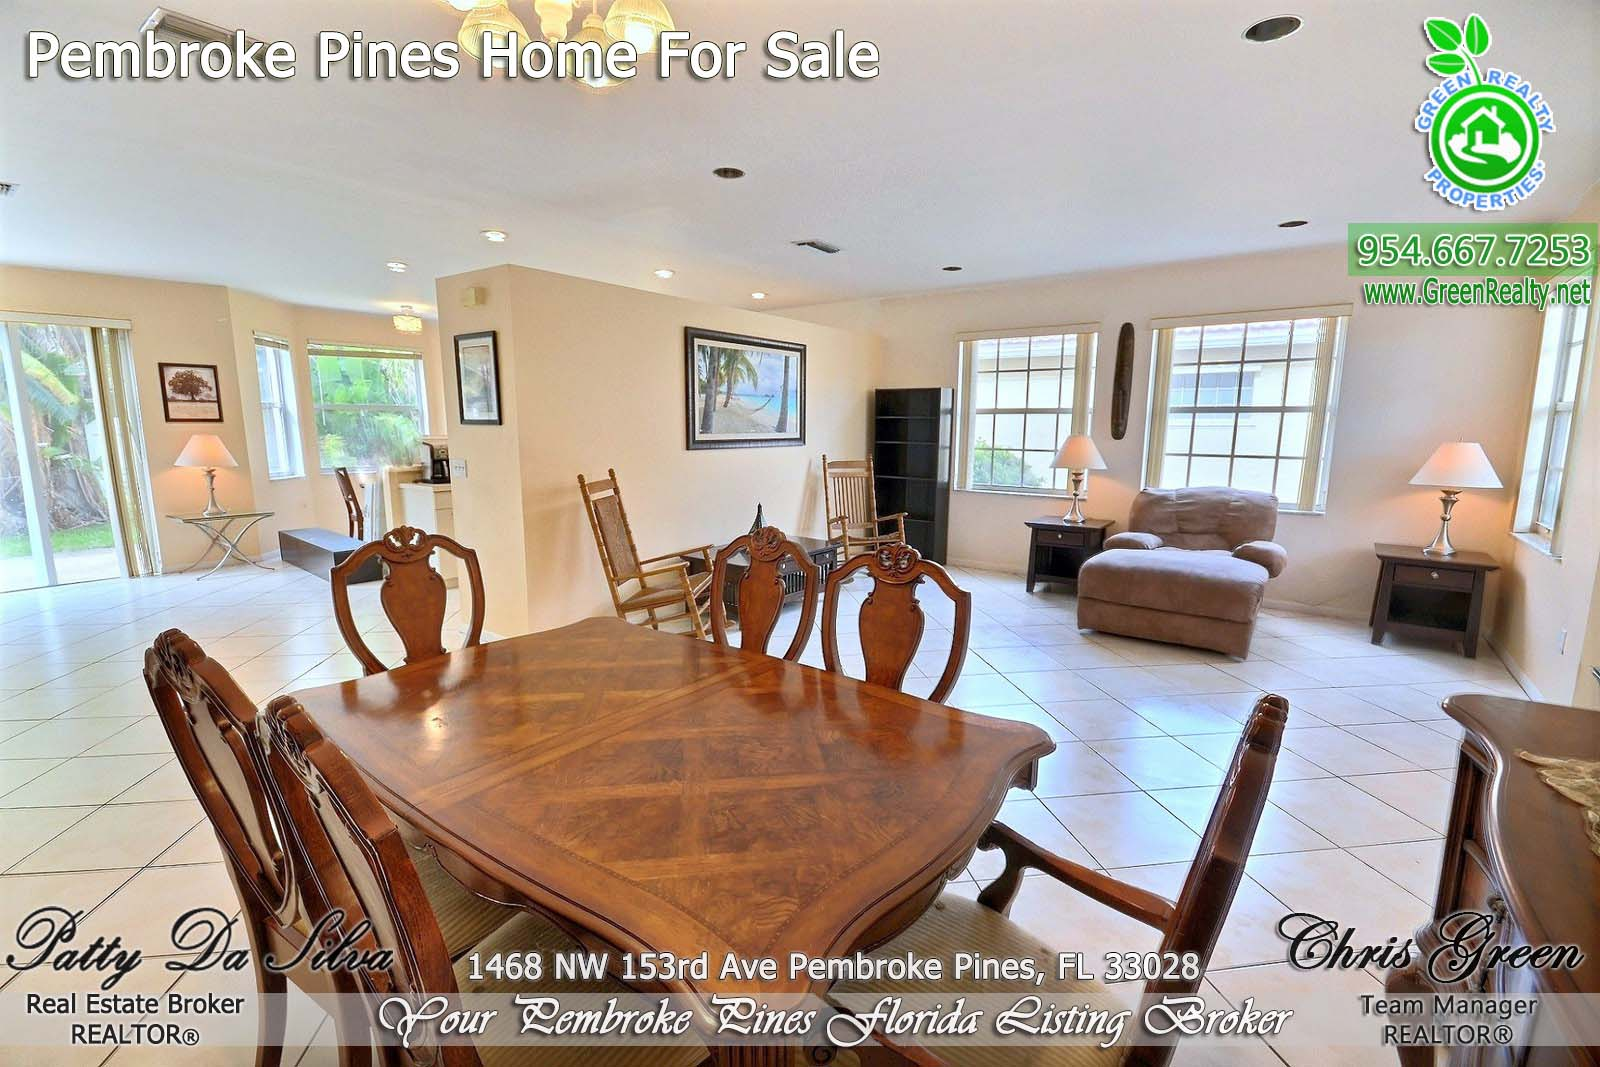 8 Pembroke Pines Homes For Sale (2)